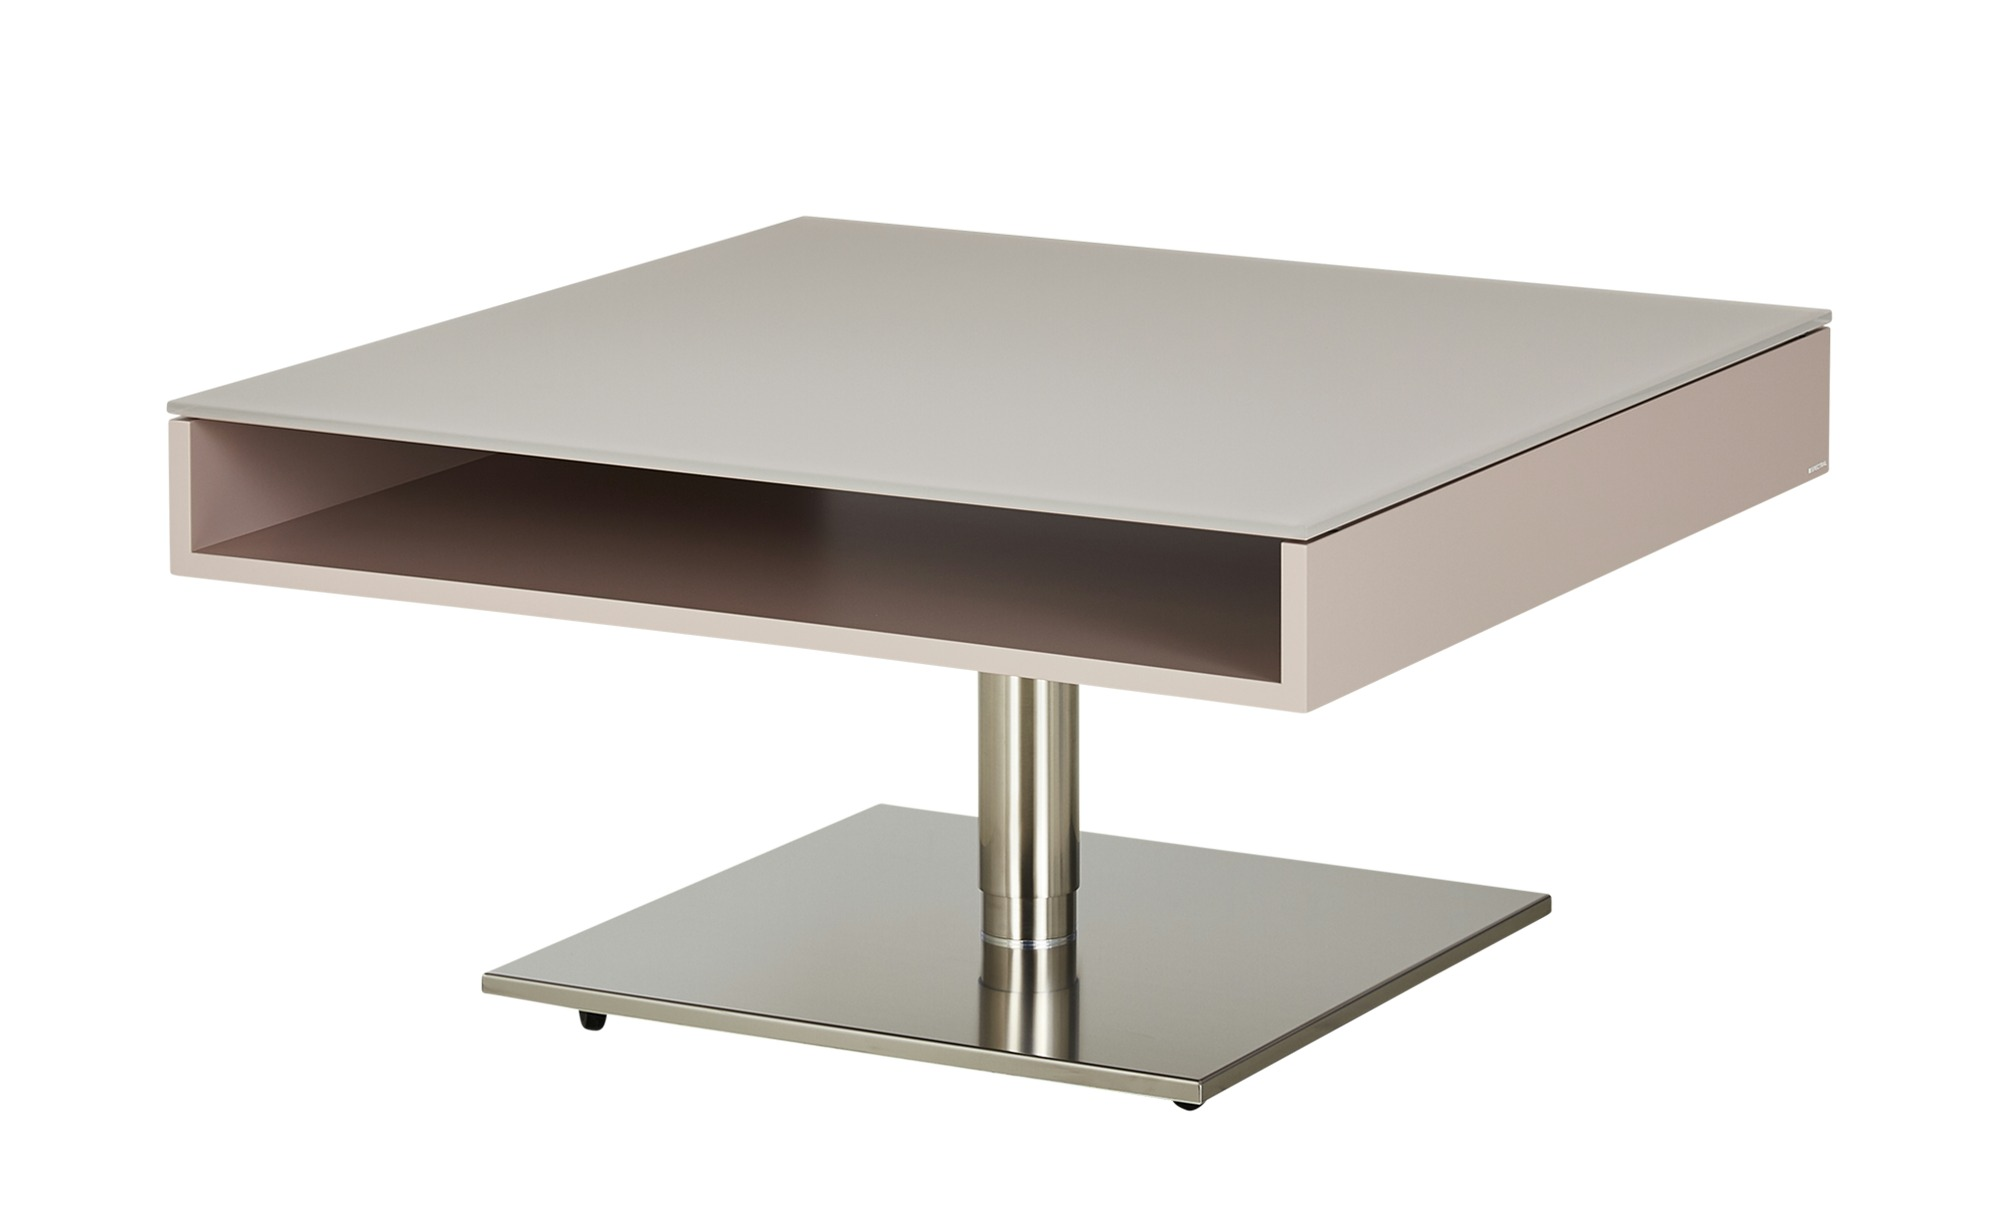 SPECTRAL Couchtisch  Tables ¦ rosa/pink ¦ Maße (cm): B: 90 H: 45 T: 90 Tische > Couchtische > Couchtische rechteckig - Höffner